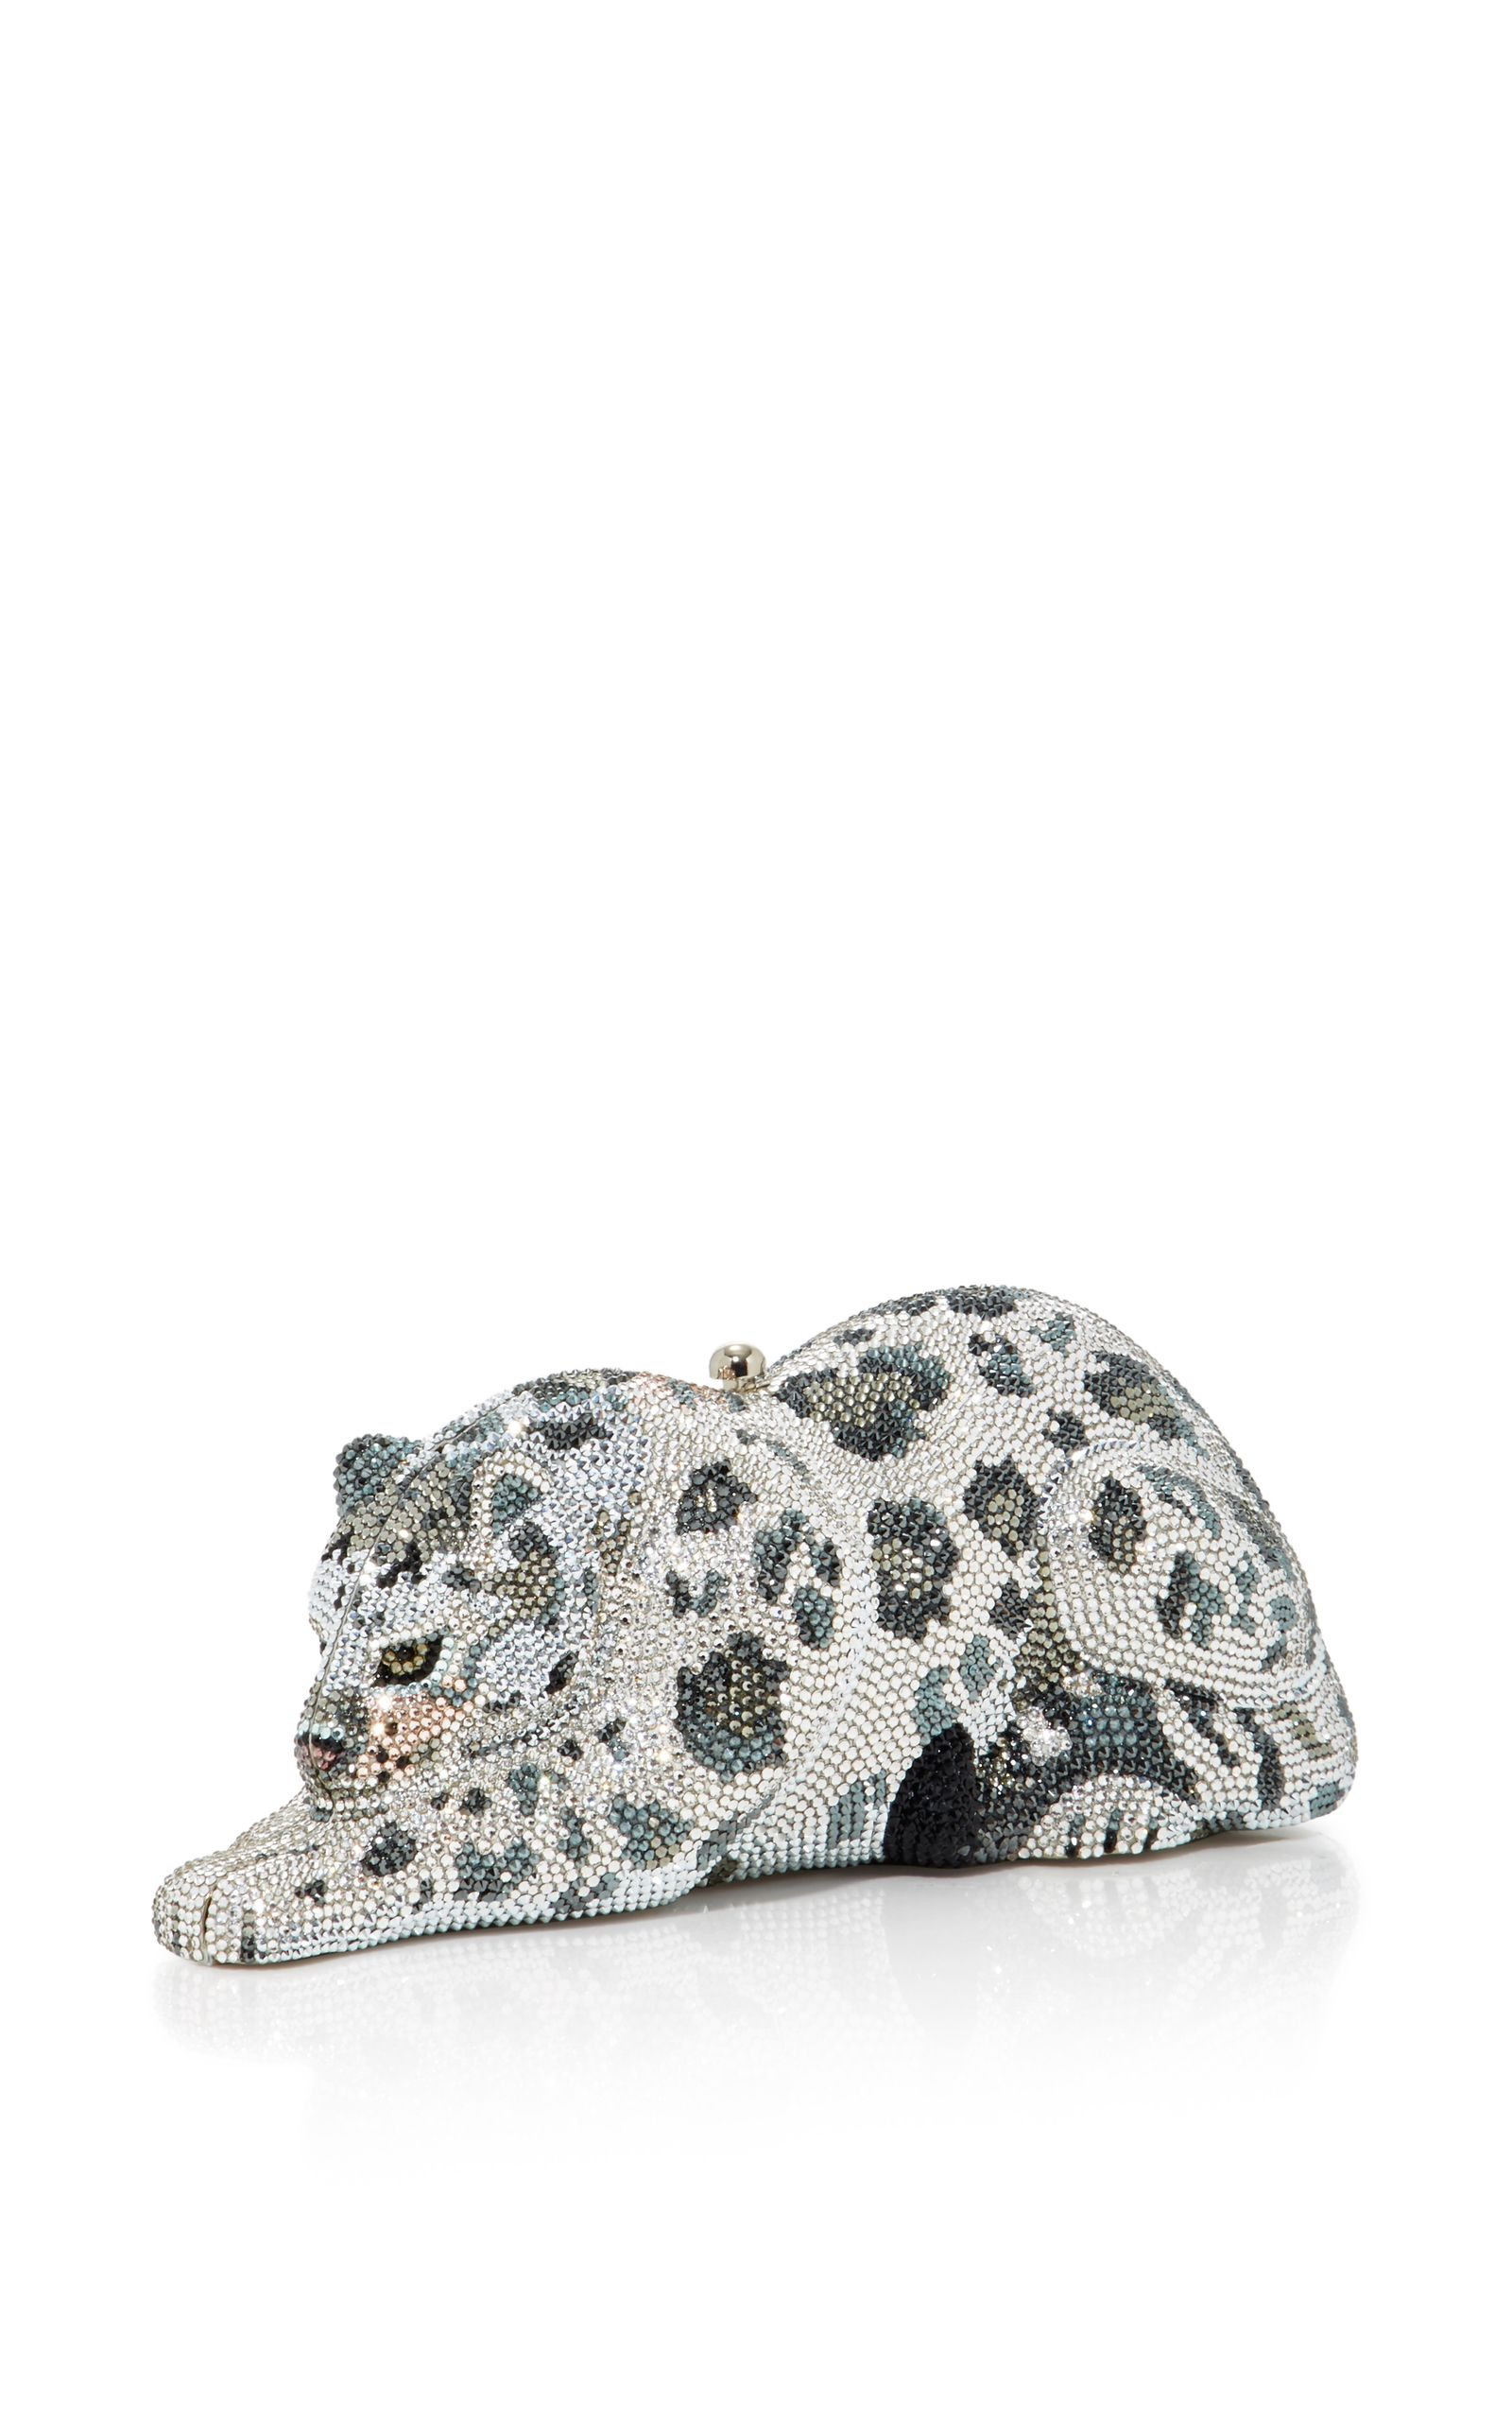 d6897db6daed Snow Leopard Wildcat Clutch by JUDITH LEIBER COUTURE for Preorder on Moda  Operandi